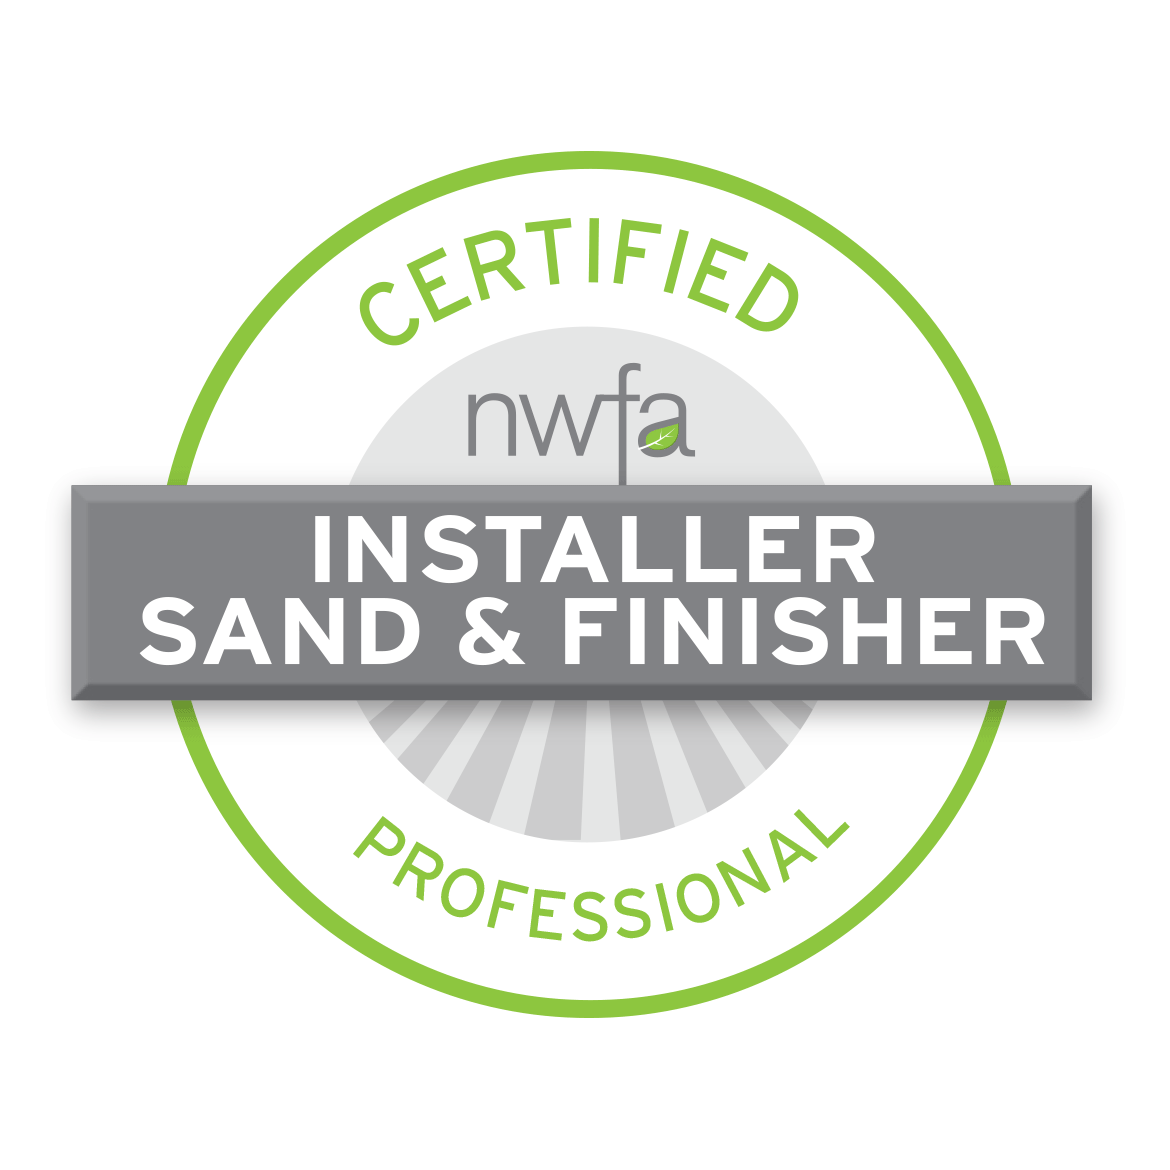 Certified Pro Installer & Sand & Finisher (CISF)